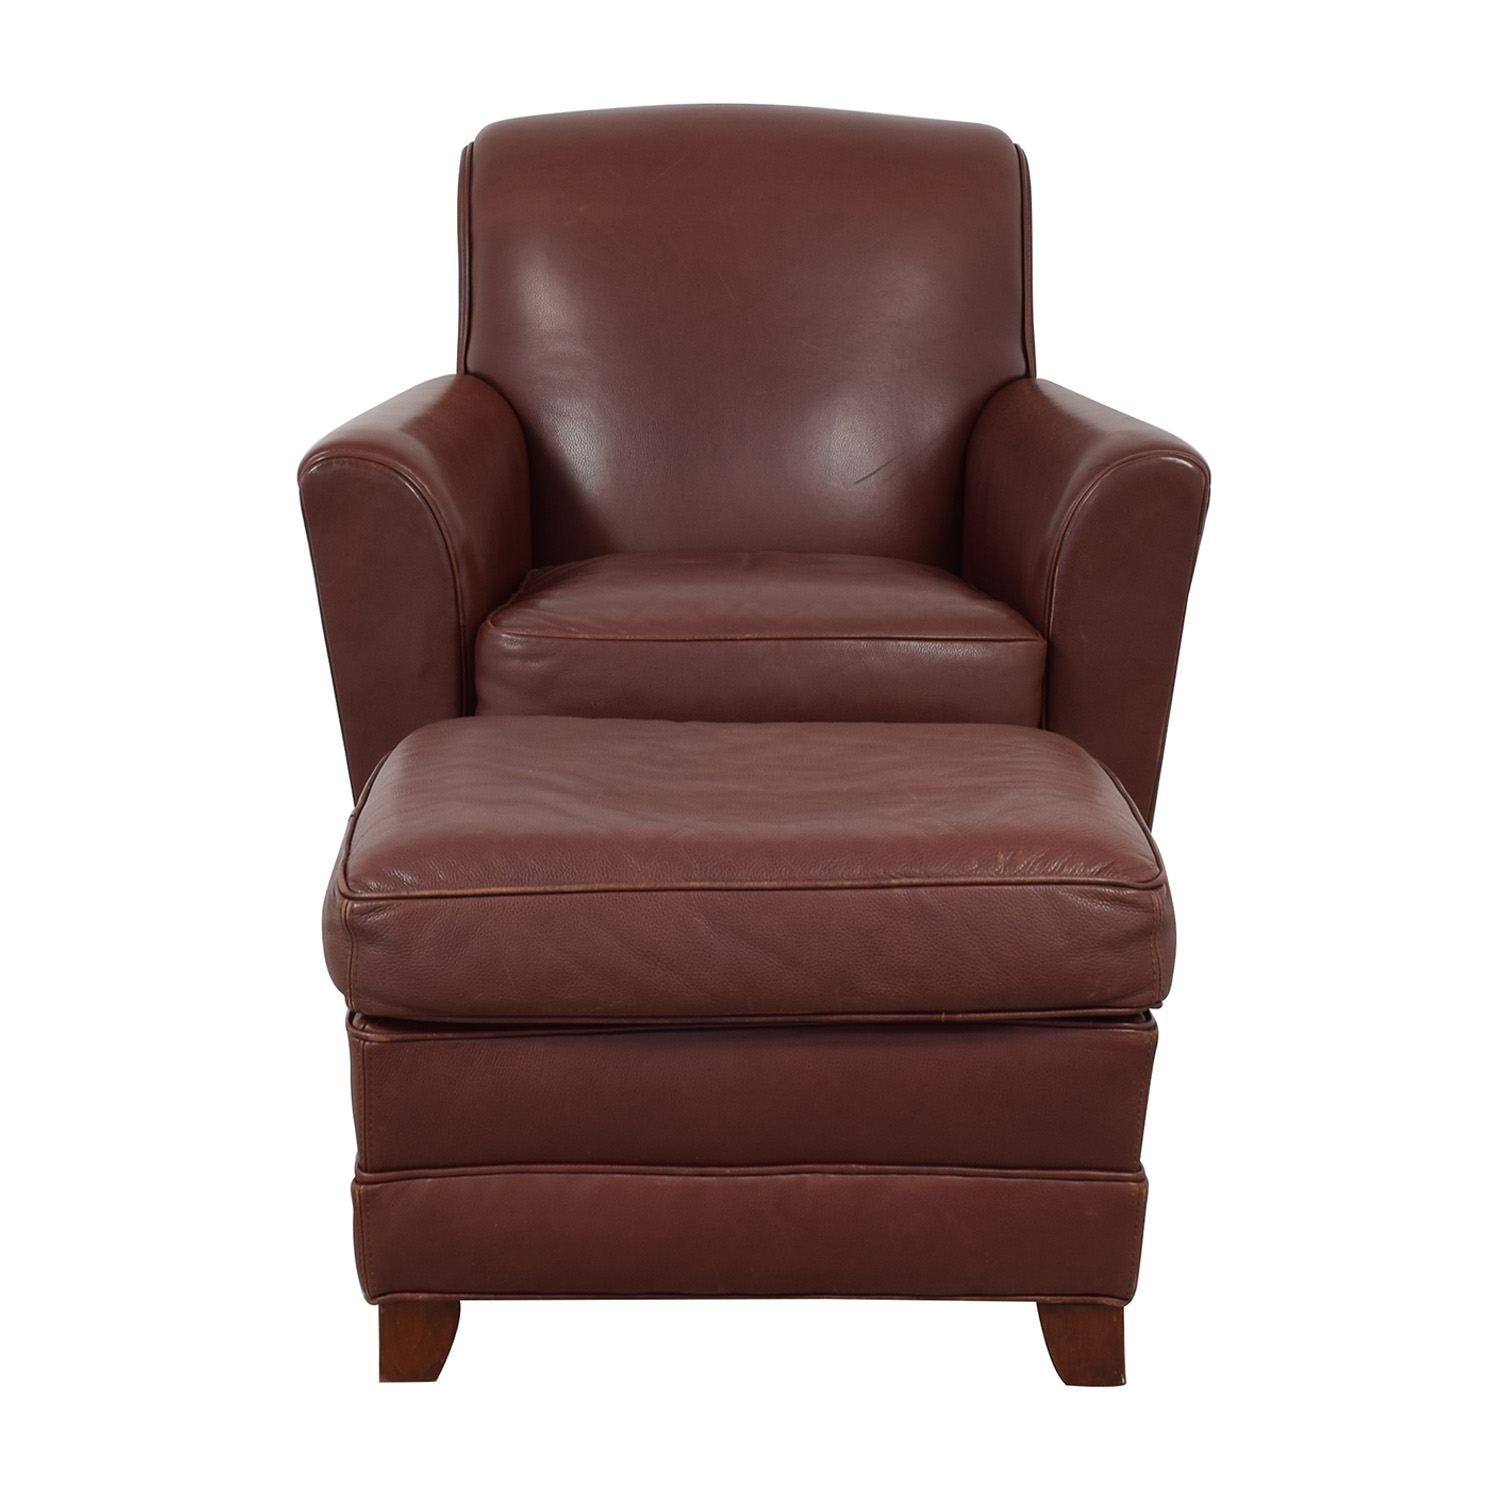 Stickley Furniture Leather Club Chair And Ottoman Price